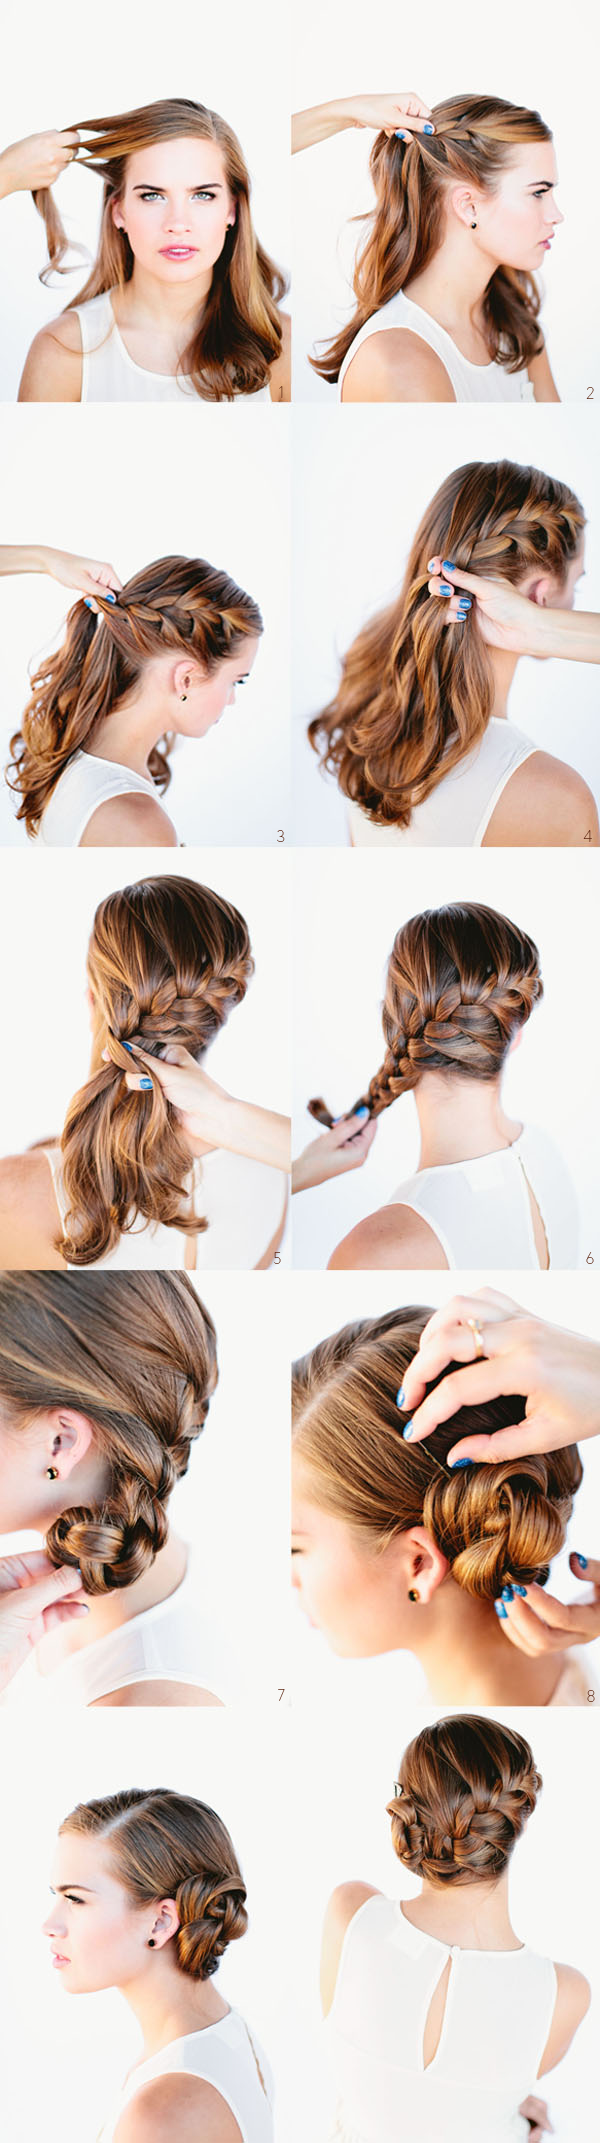 French Braid Bun Hair Tutorial Once Wed Hair Styles Long Hair Styles Hair Bun Tutorial